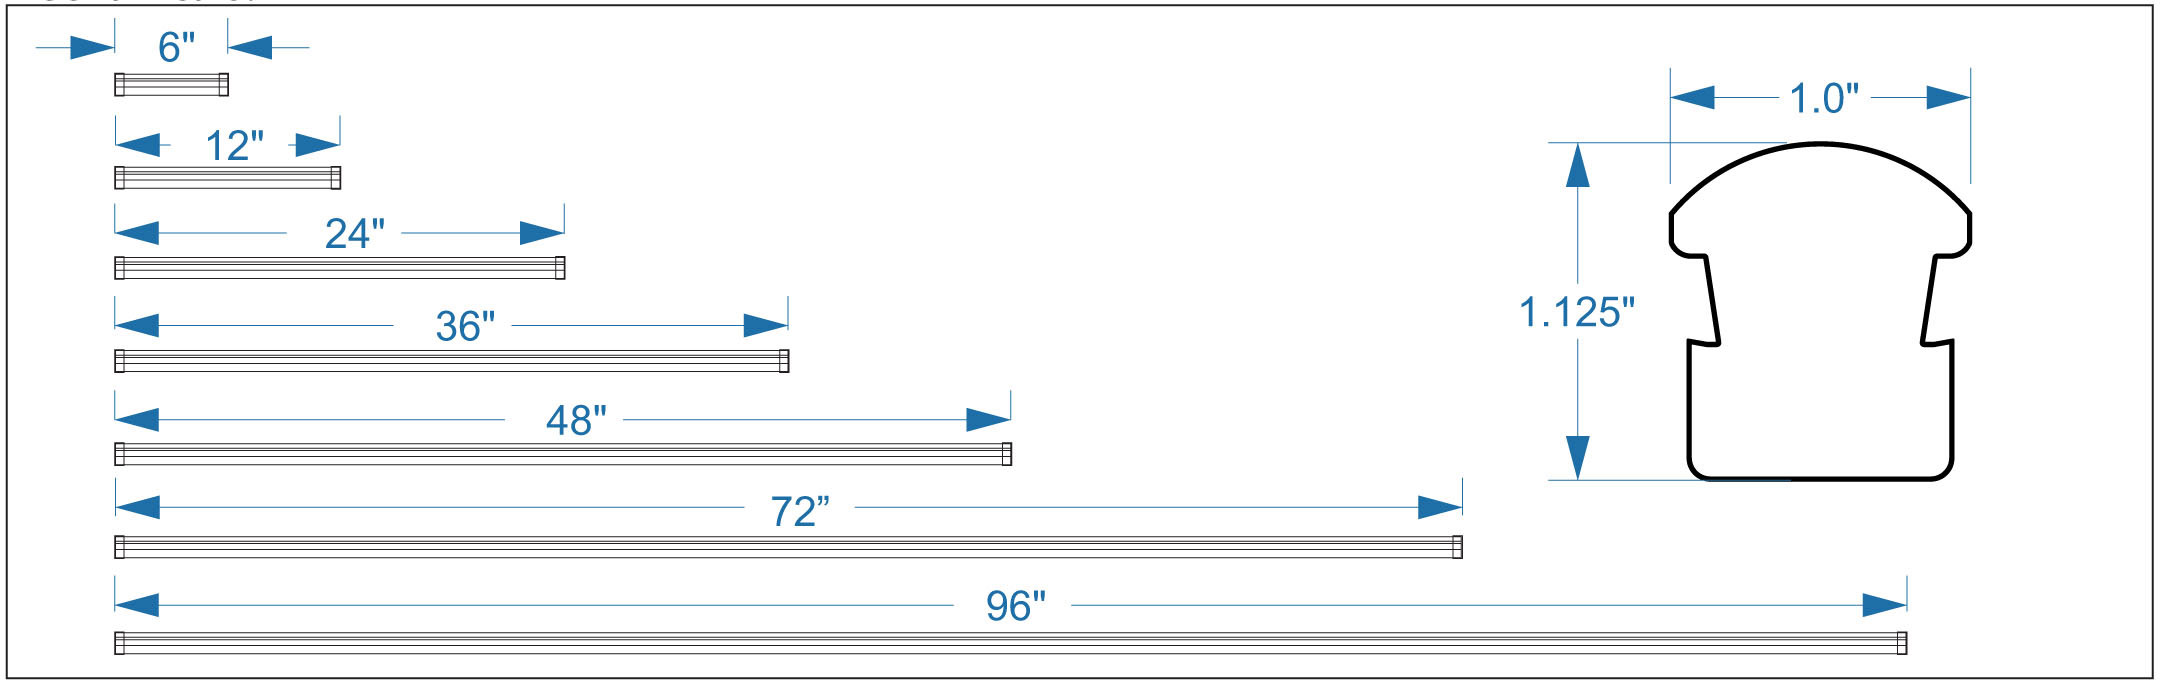 LED Border Tube Mechanical Drawing